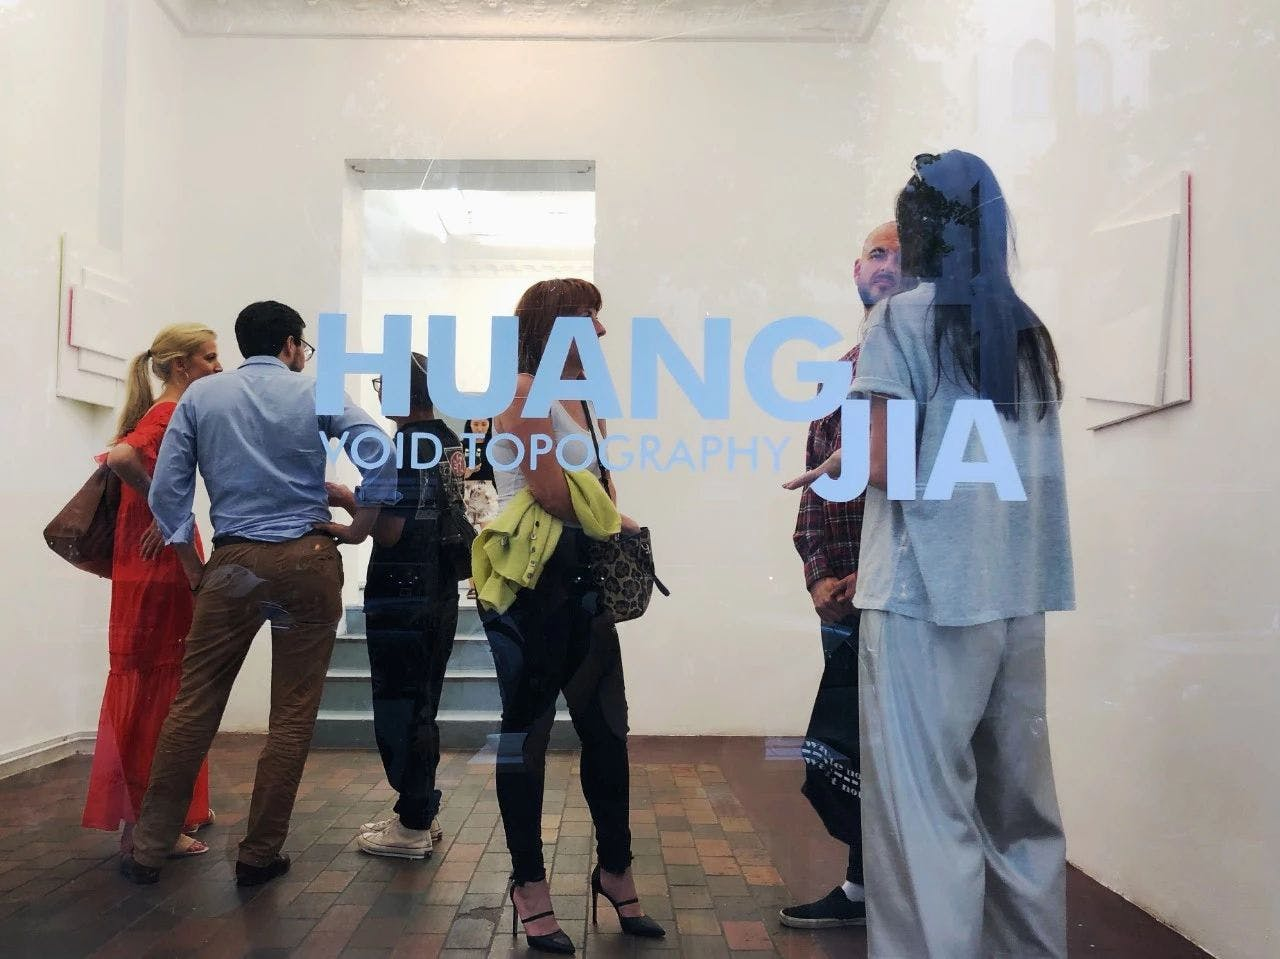 Artist-Residency-Berlin-coGalleries-Gallery Exhibition Huang Jia copyright Berlin China Art